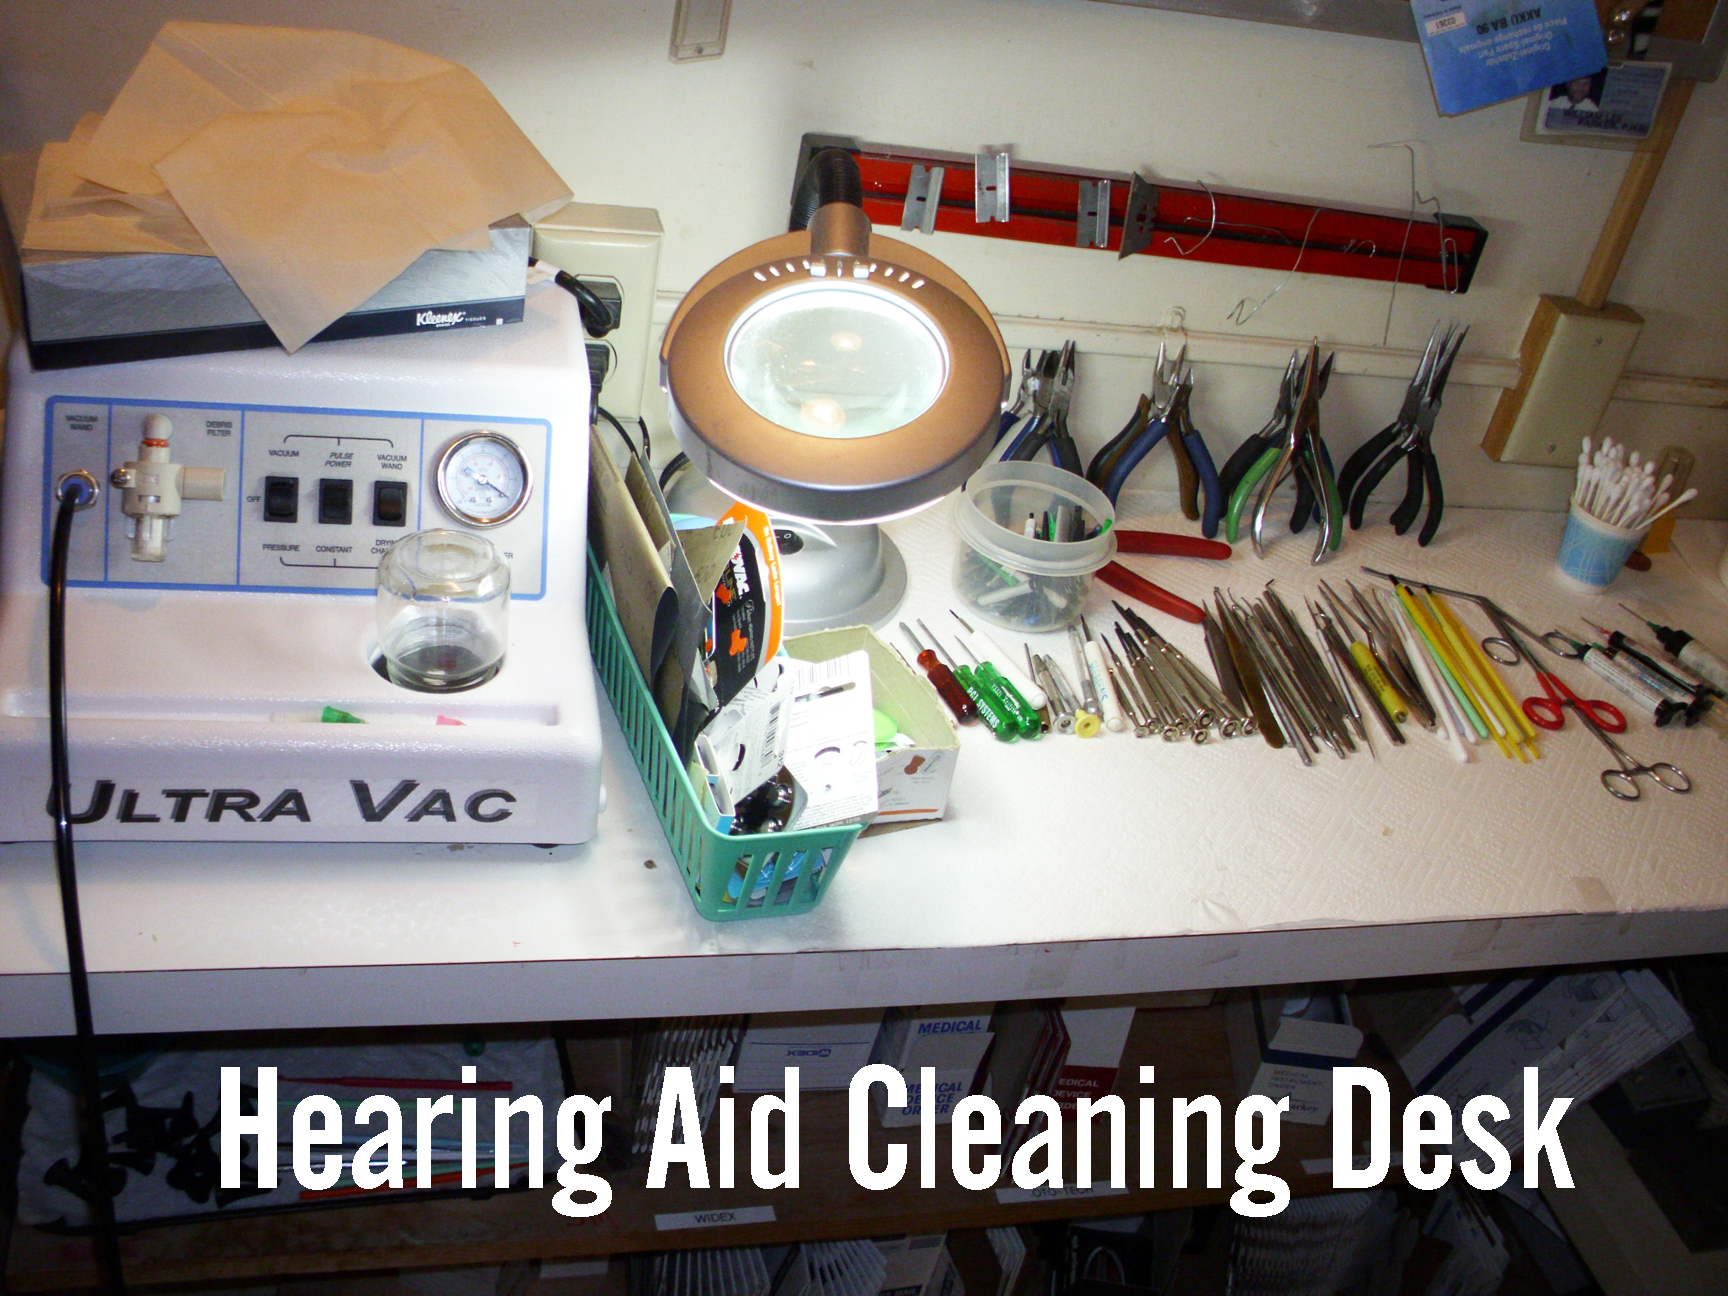 Hearing Aid Cleaning Desk